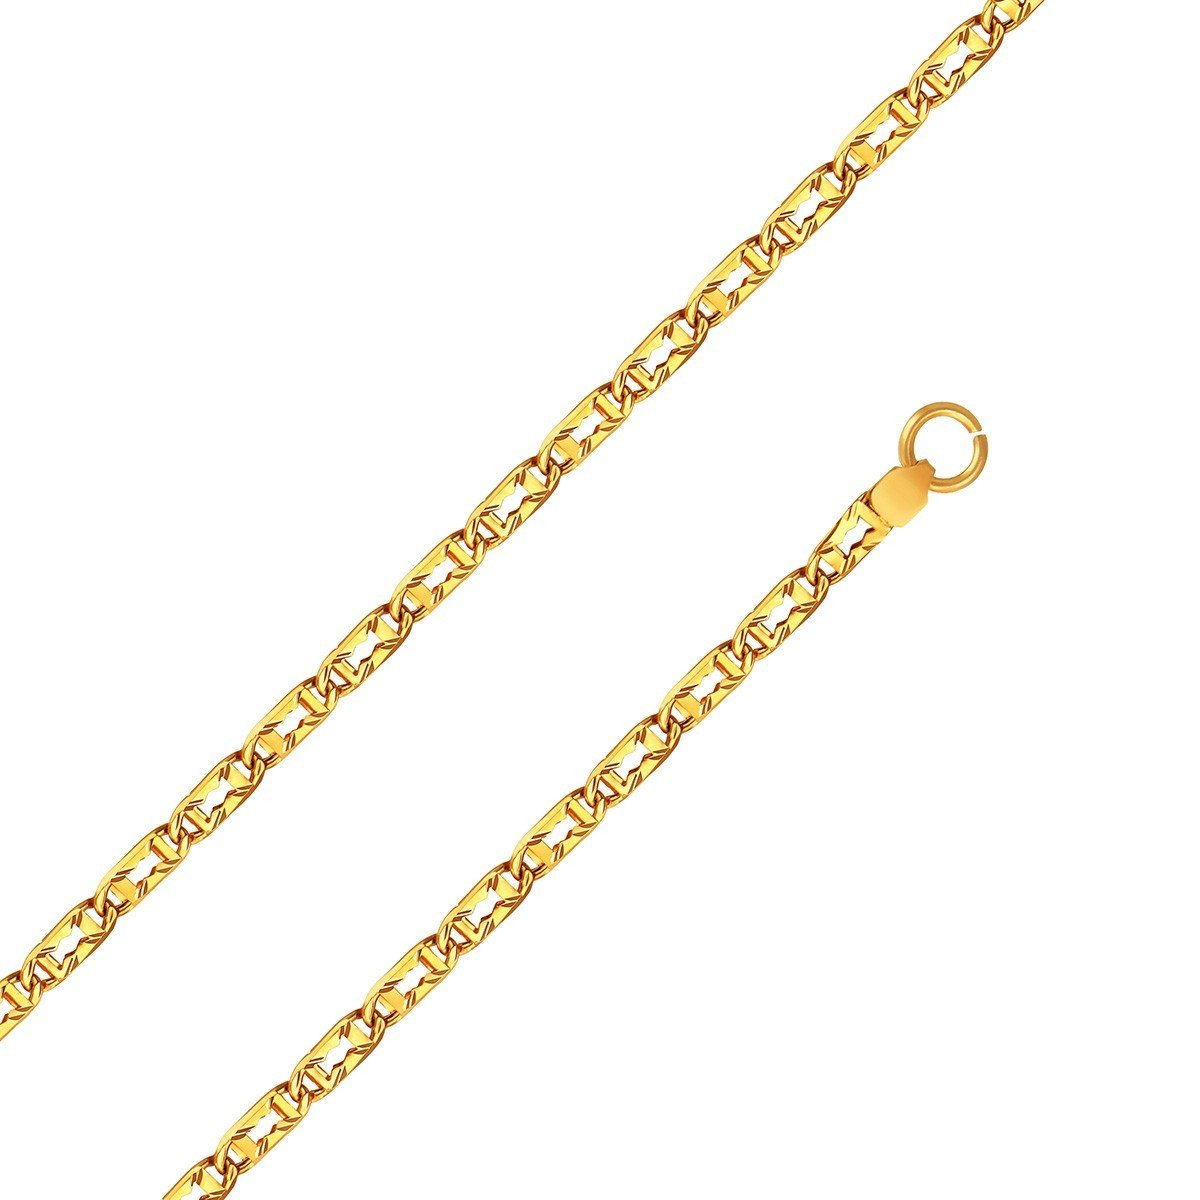 Gents Gold Chain